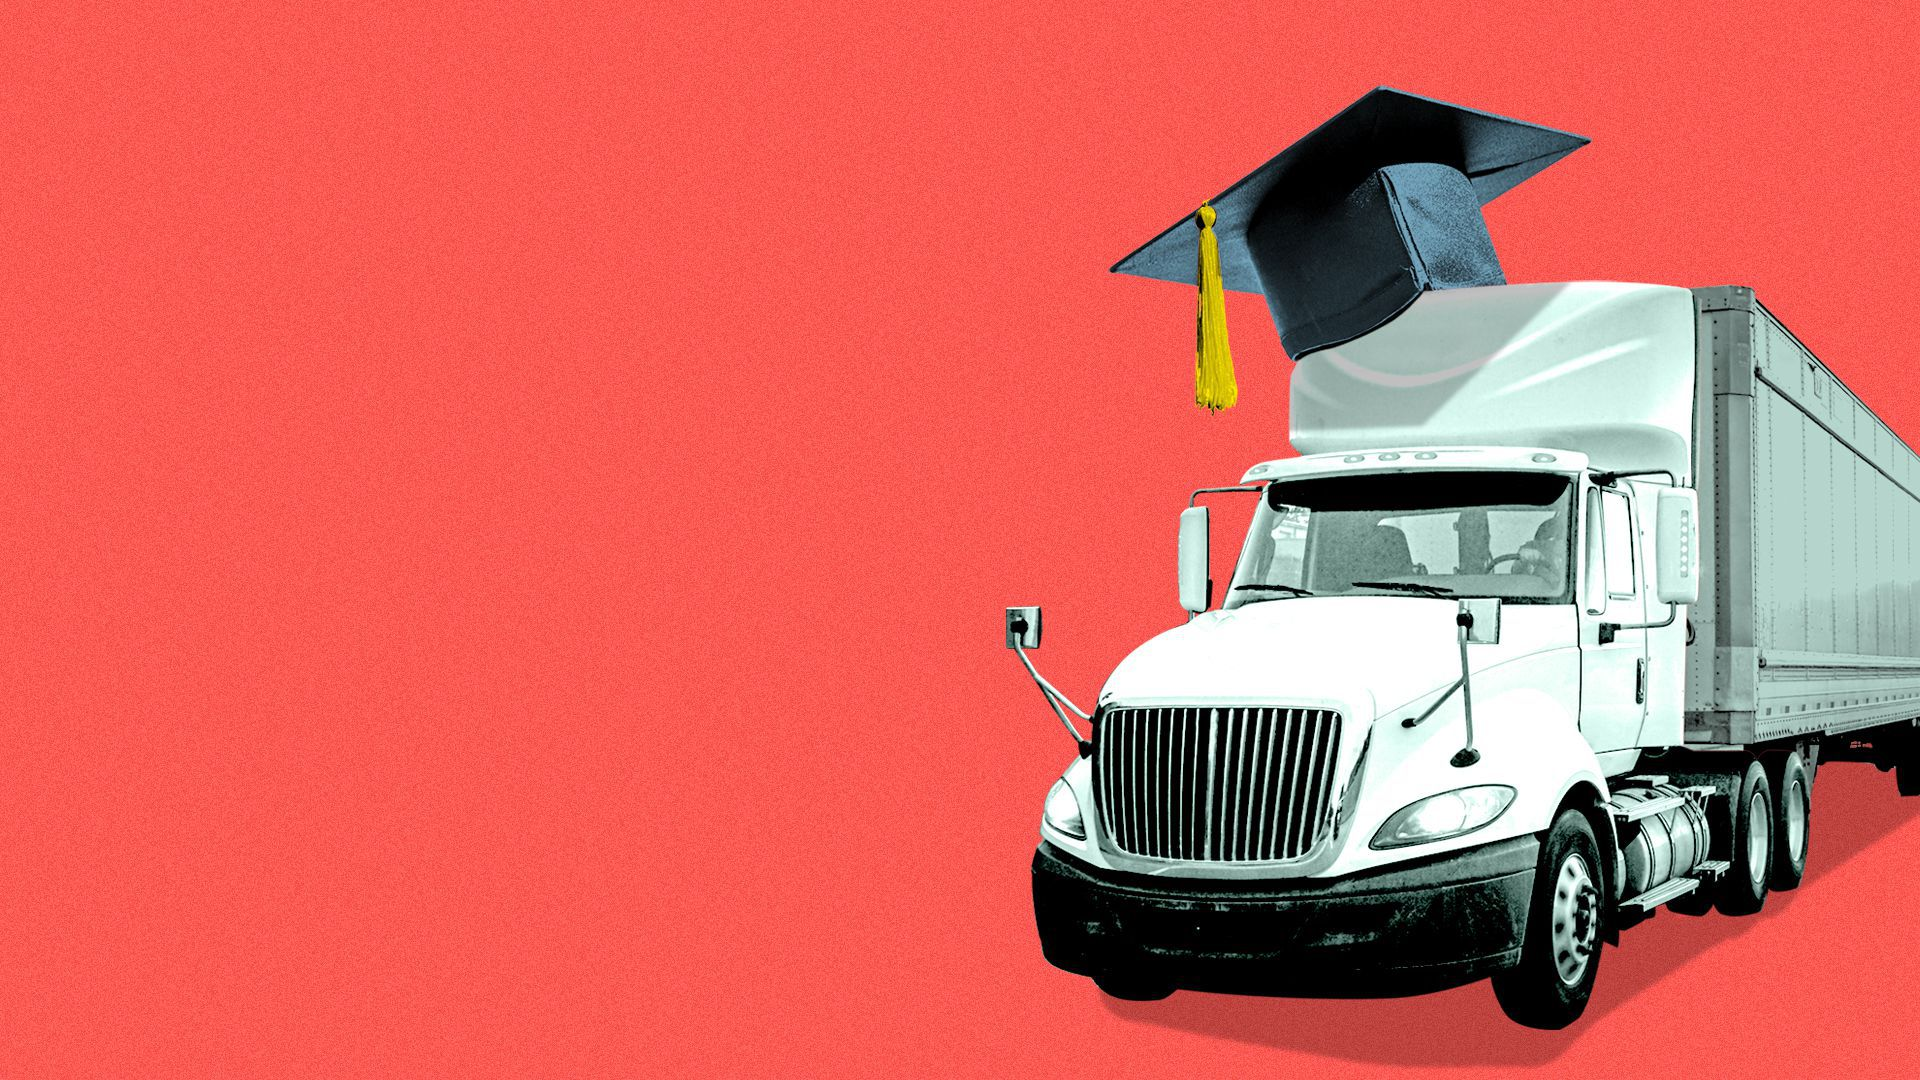 Illustration of a tractor trailer wearing a mortarboard.